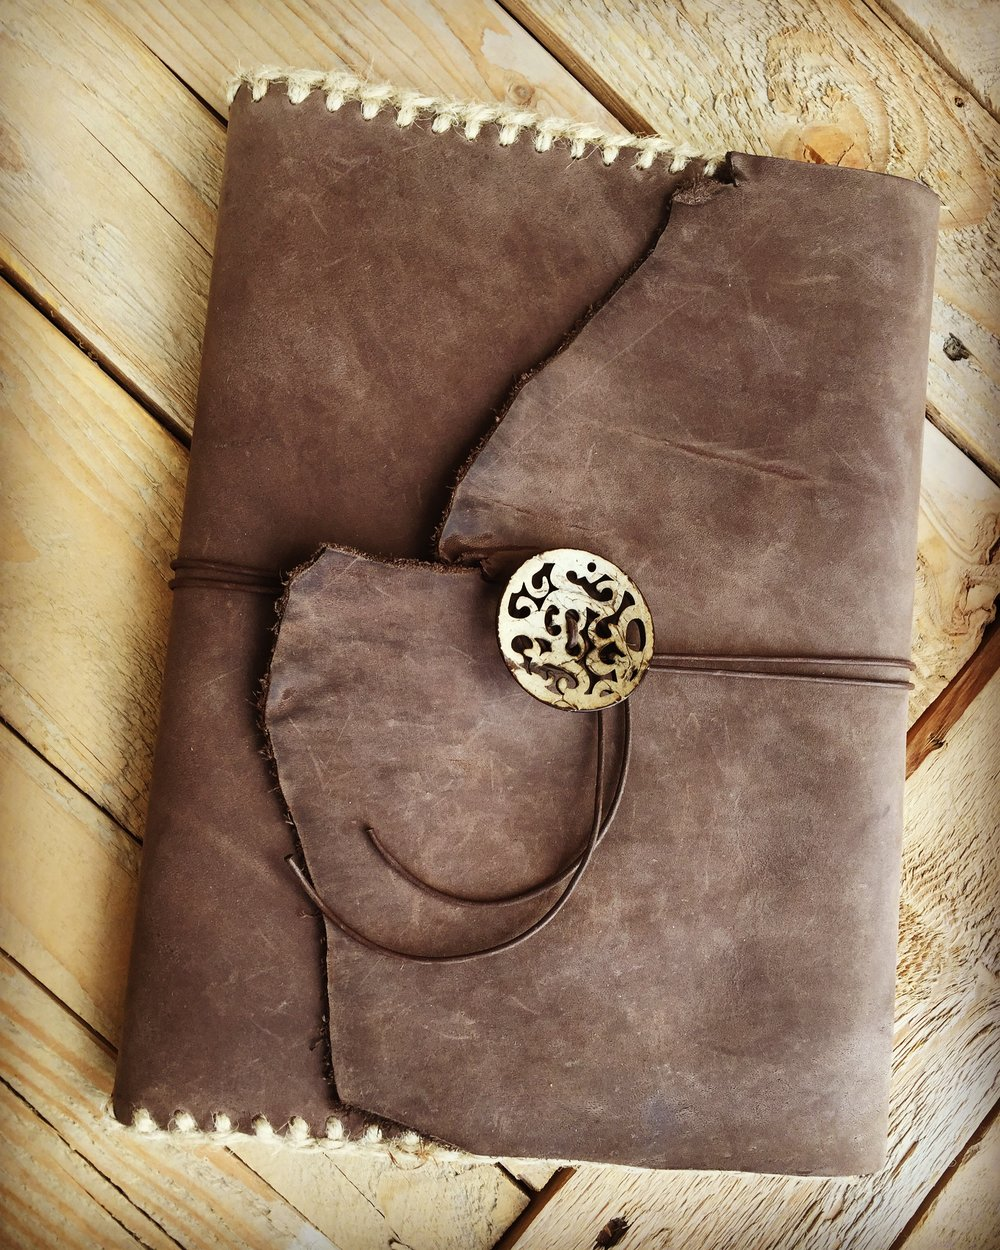 FOR SALE - Handmade Leather Notebook Cover  (above) Re-fillable!  Standard 'composition notebook' included. Carved coconut shell pendant.  $85  ( $14  shipping within the US & sales tax applies to UT residence). Custom Heat Engraving can be added! Email me at:  CircleM@outlook.com